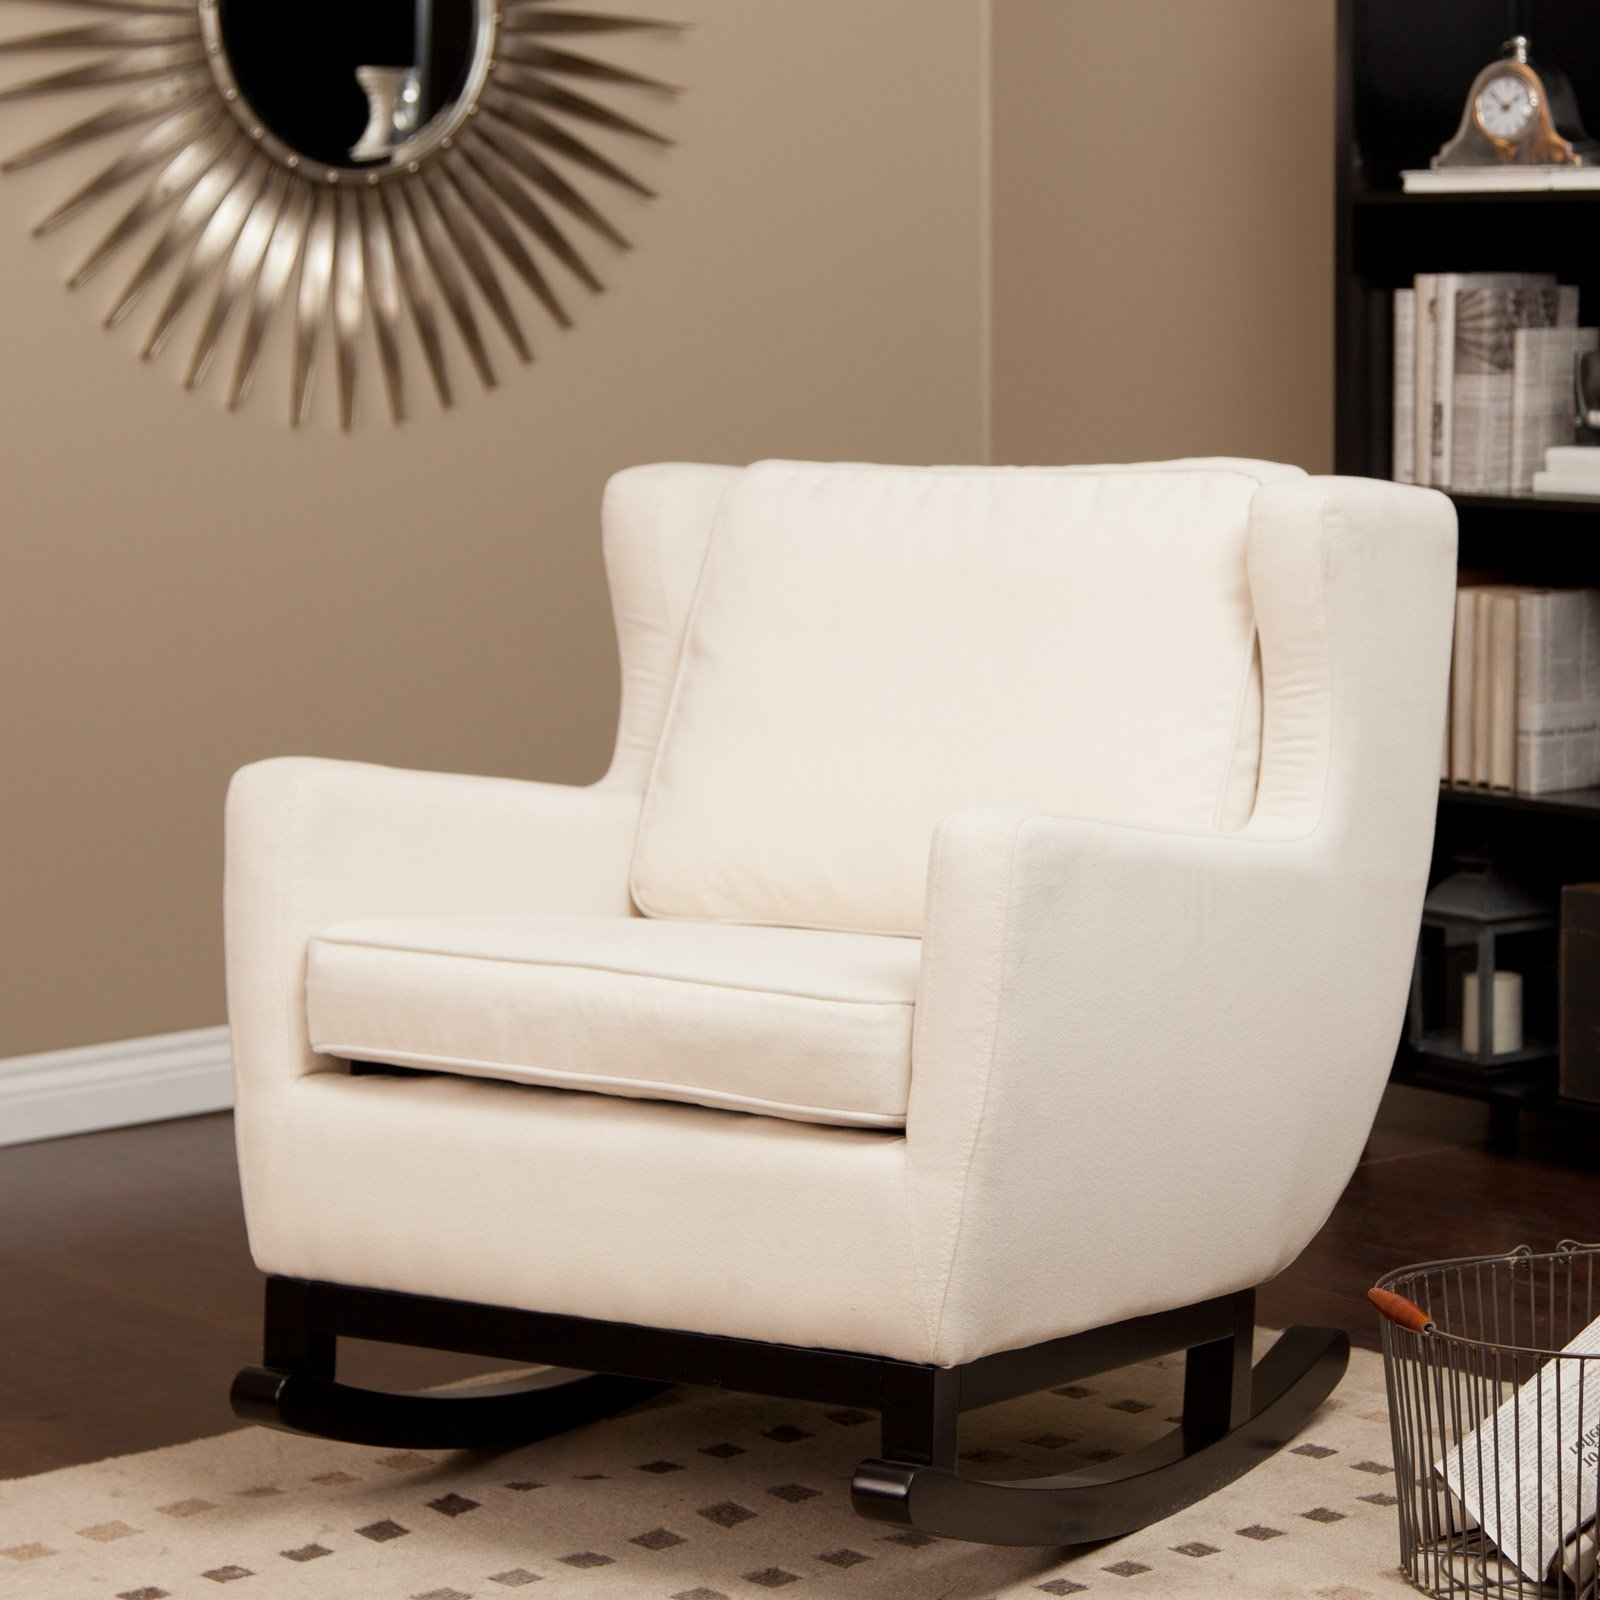 Fashionable Rocking Chairs For Living Room Regarding Livingroom : Winsome Rocking Chair At Modern Interior Chairs (View 12 of 15)